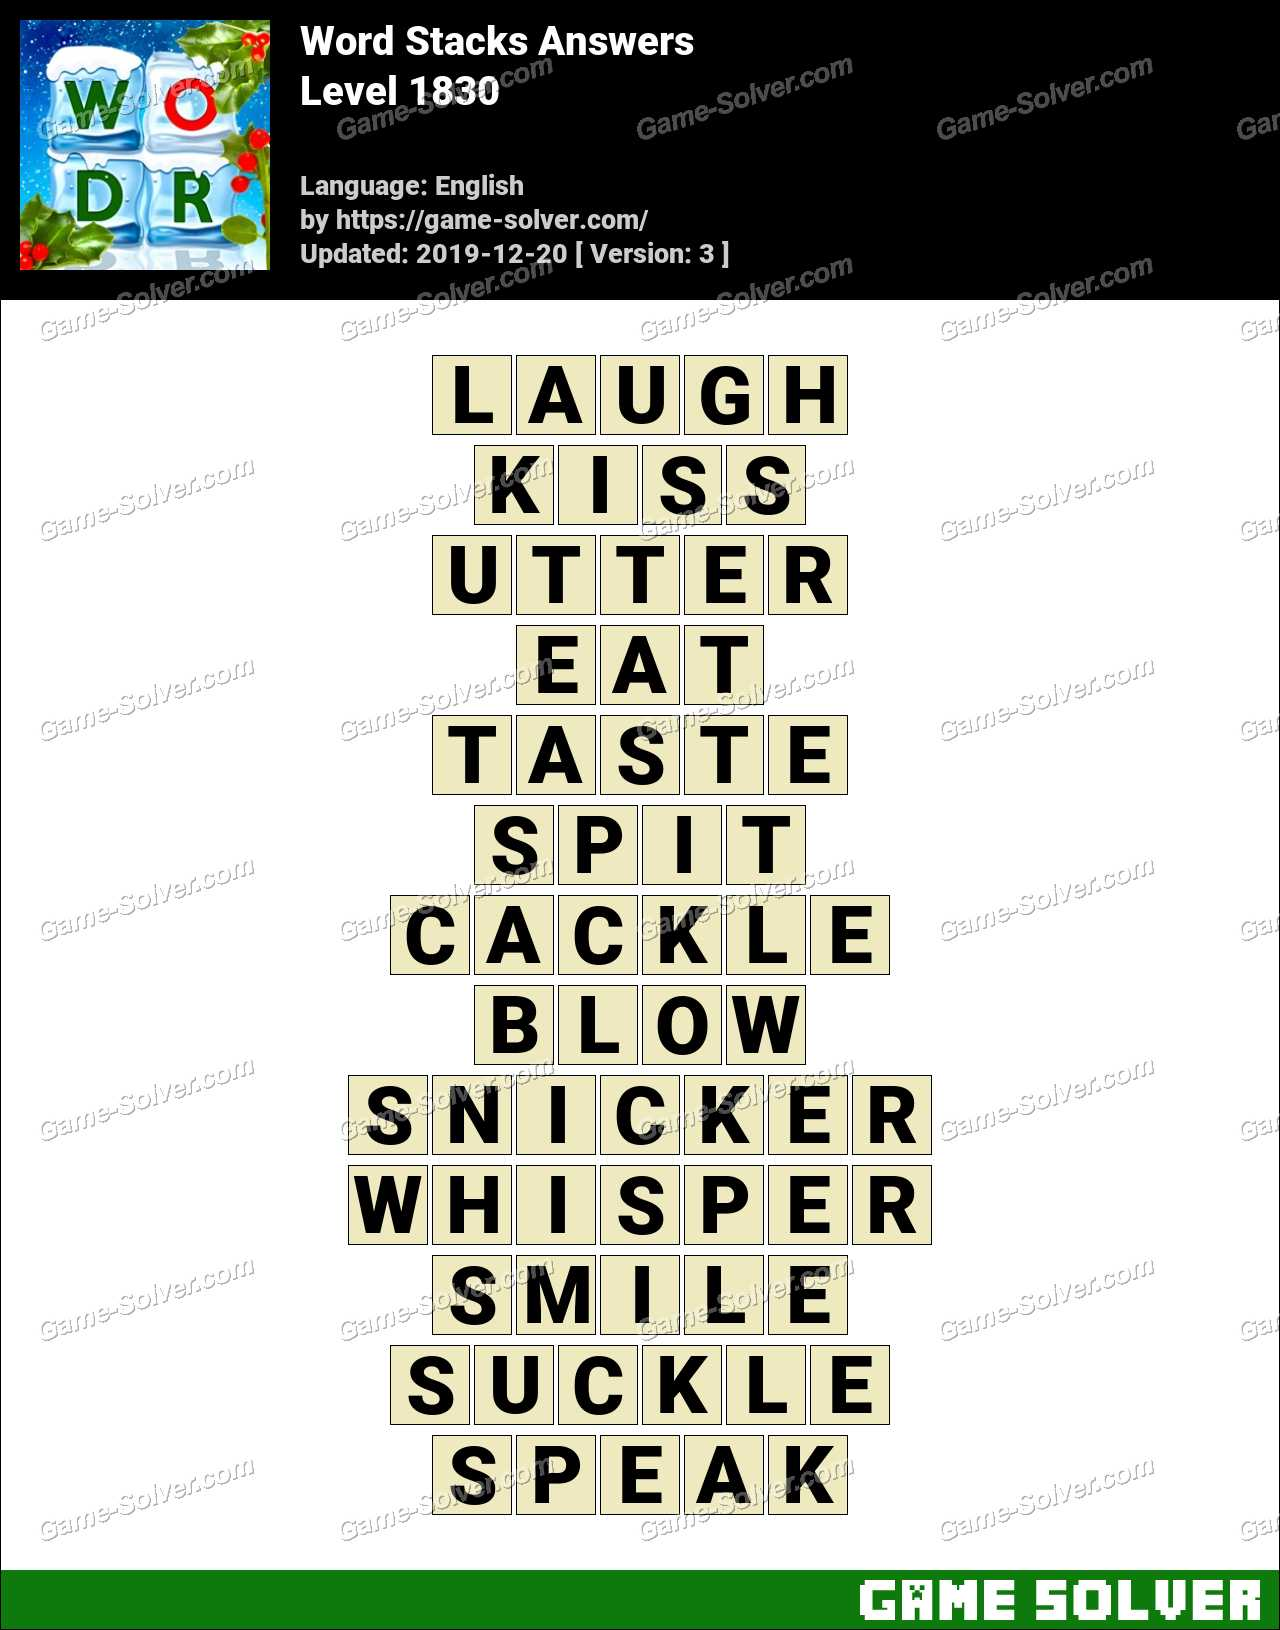 Word Stacks Level 1830 Answers